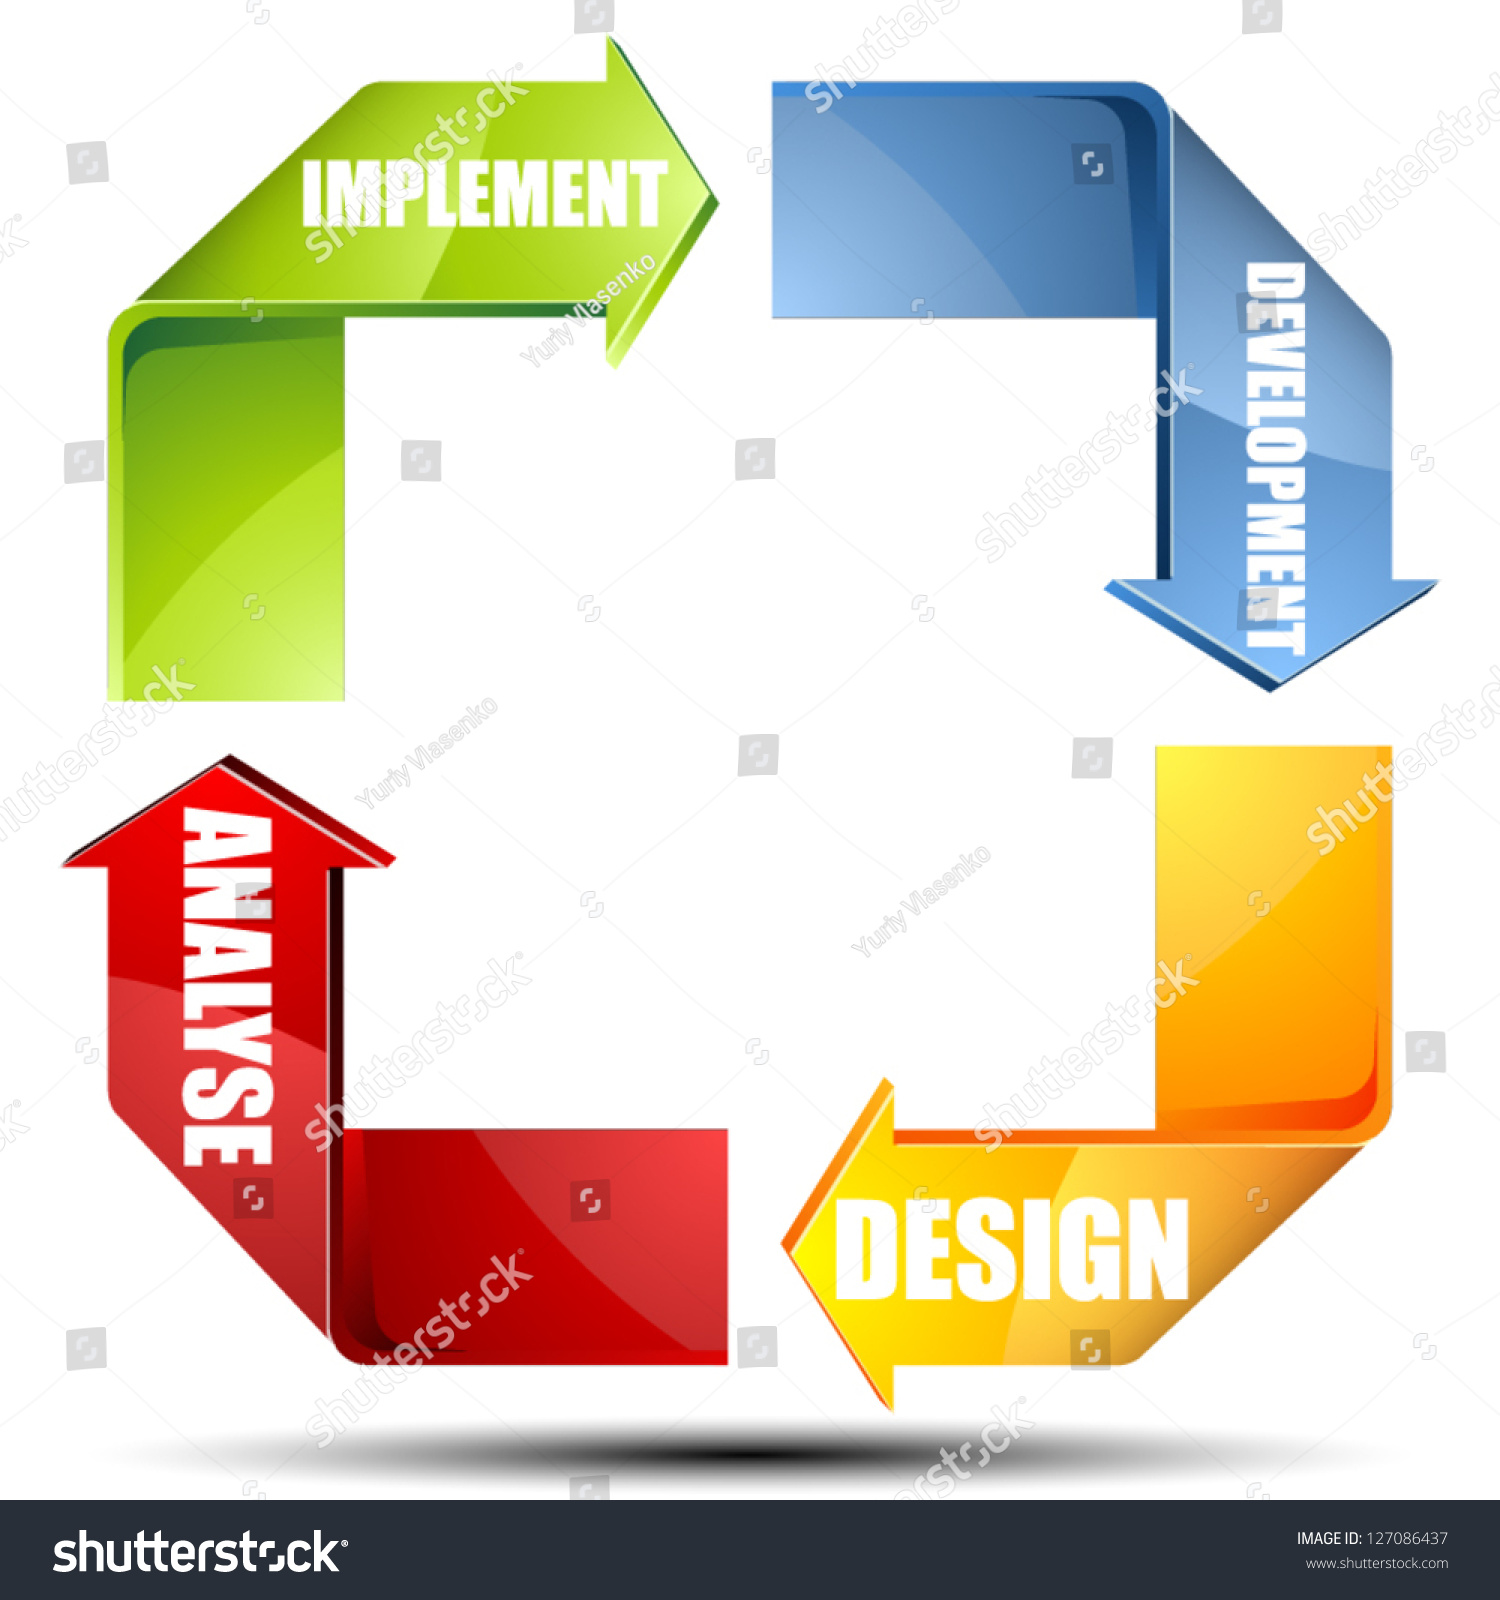 Software process cycle stock vector illustration 127086437 Vector image software